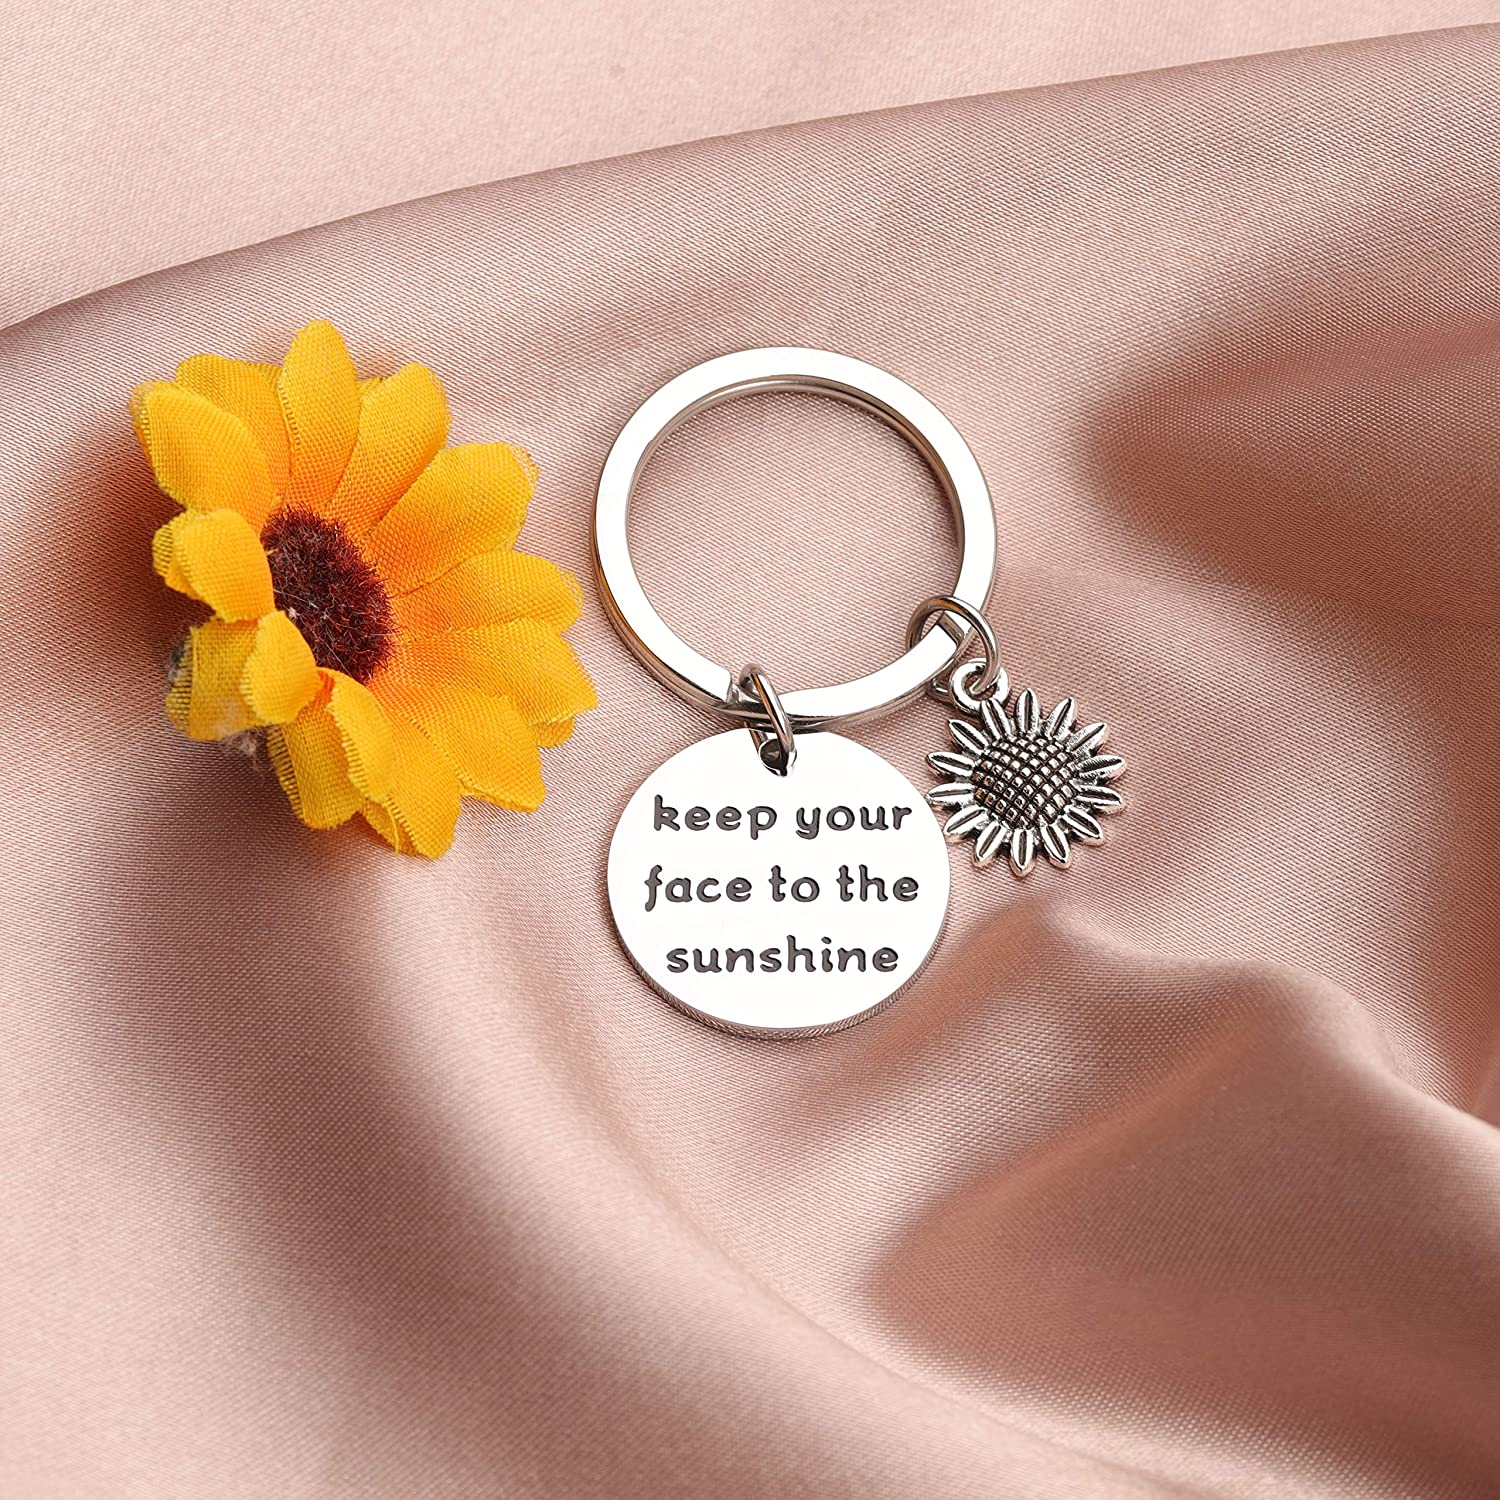 AKTAP Sunflower Charm Bracelet Inspirational Gift Keep Your Face to The Sunshine